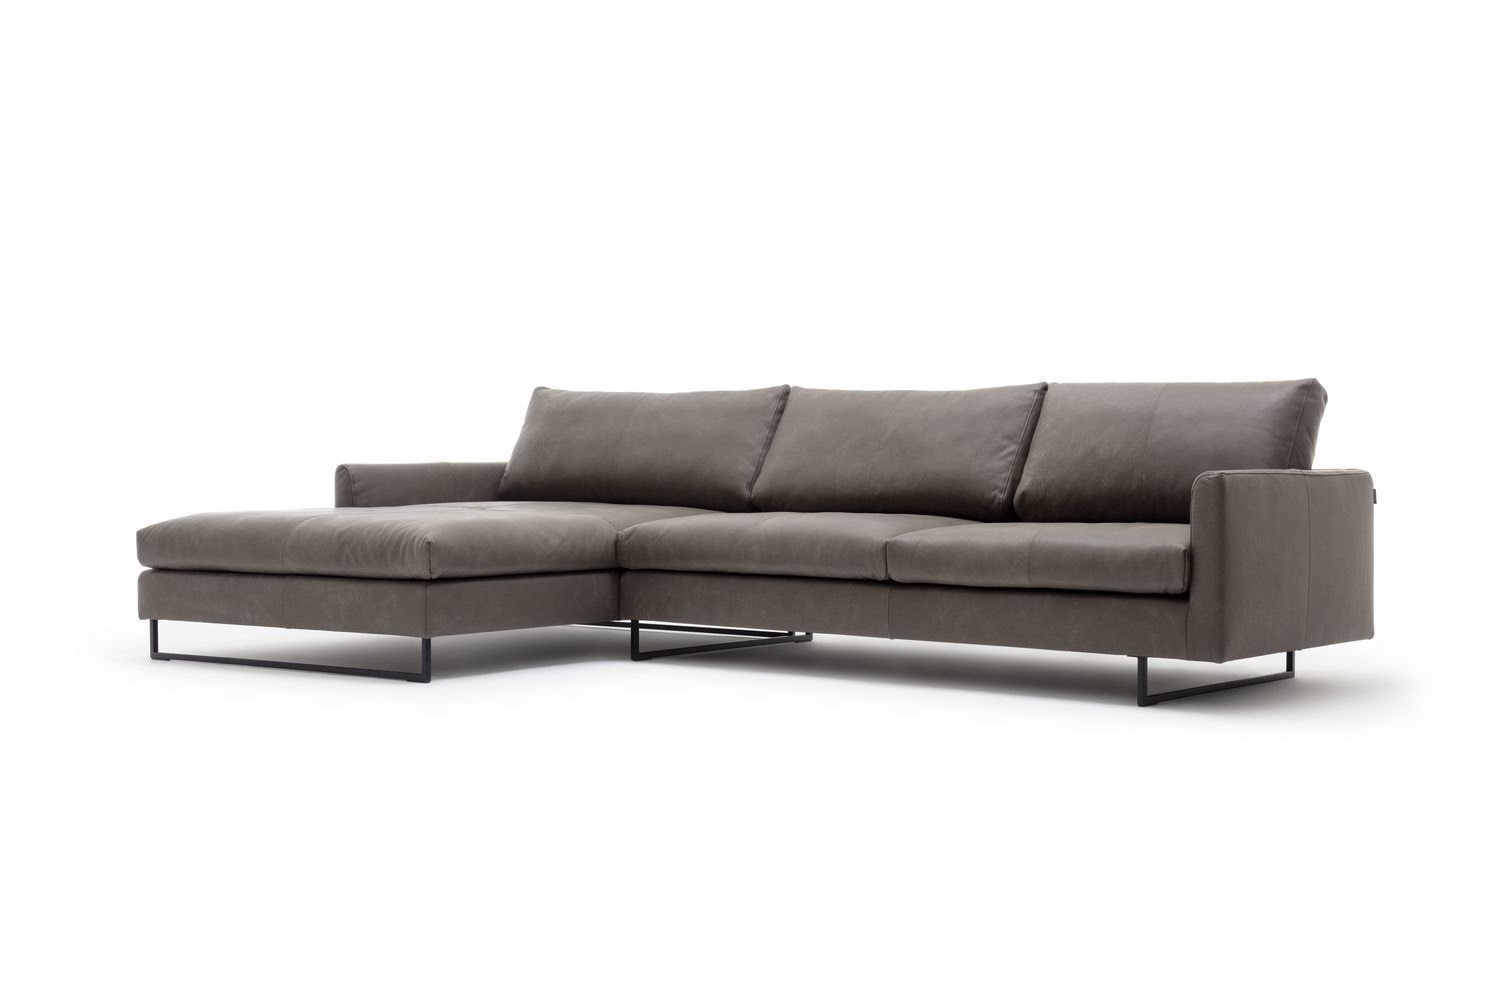 Freistil Rolf Benz Freistil 134 Ecksofa Shop I Design Bestseller De